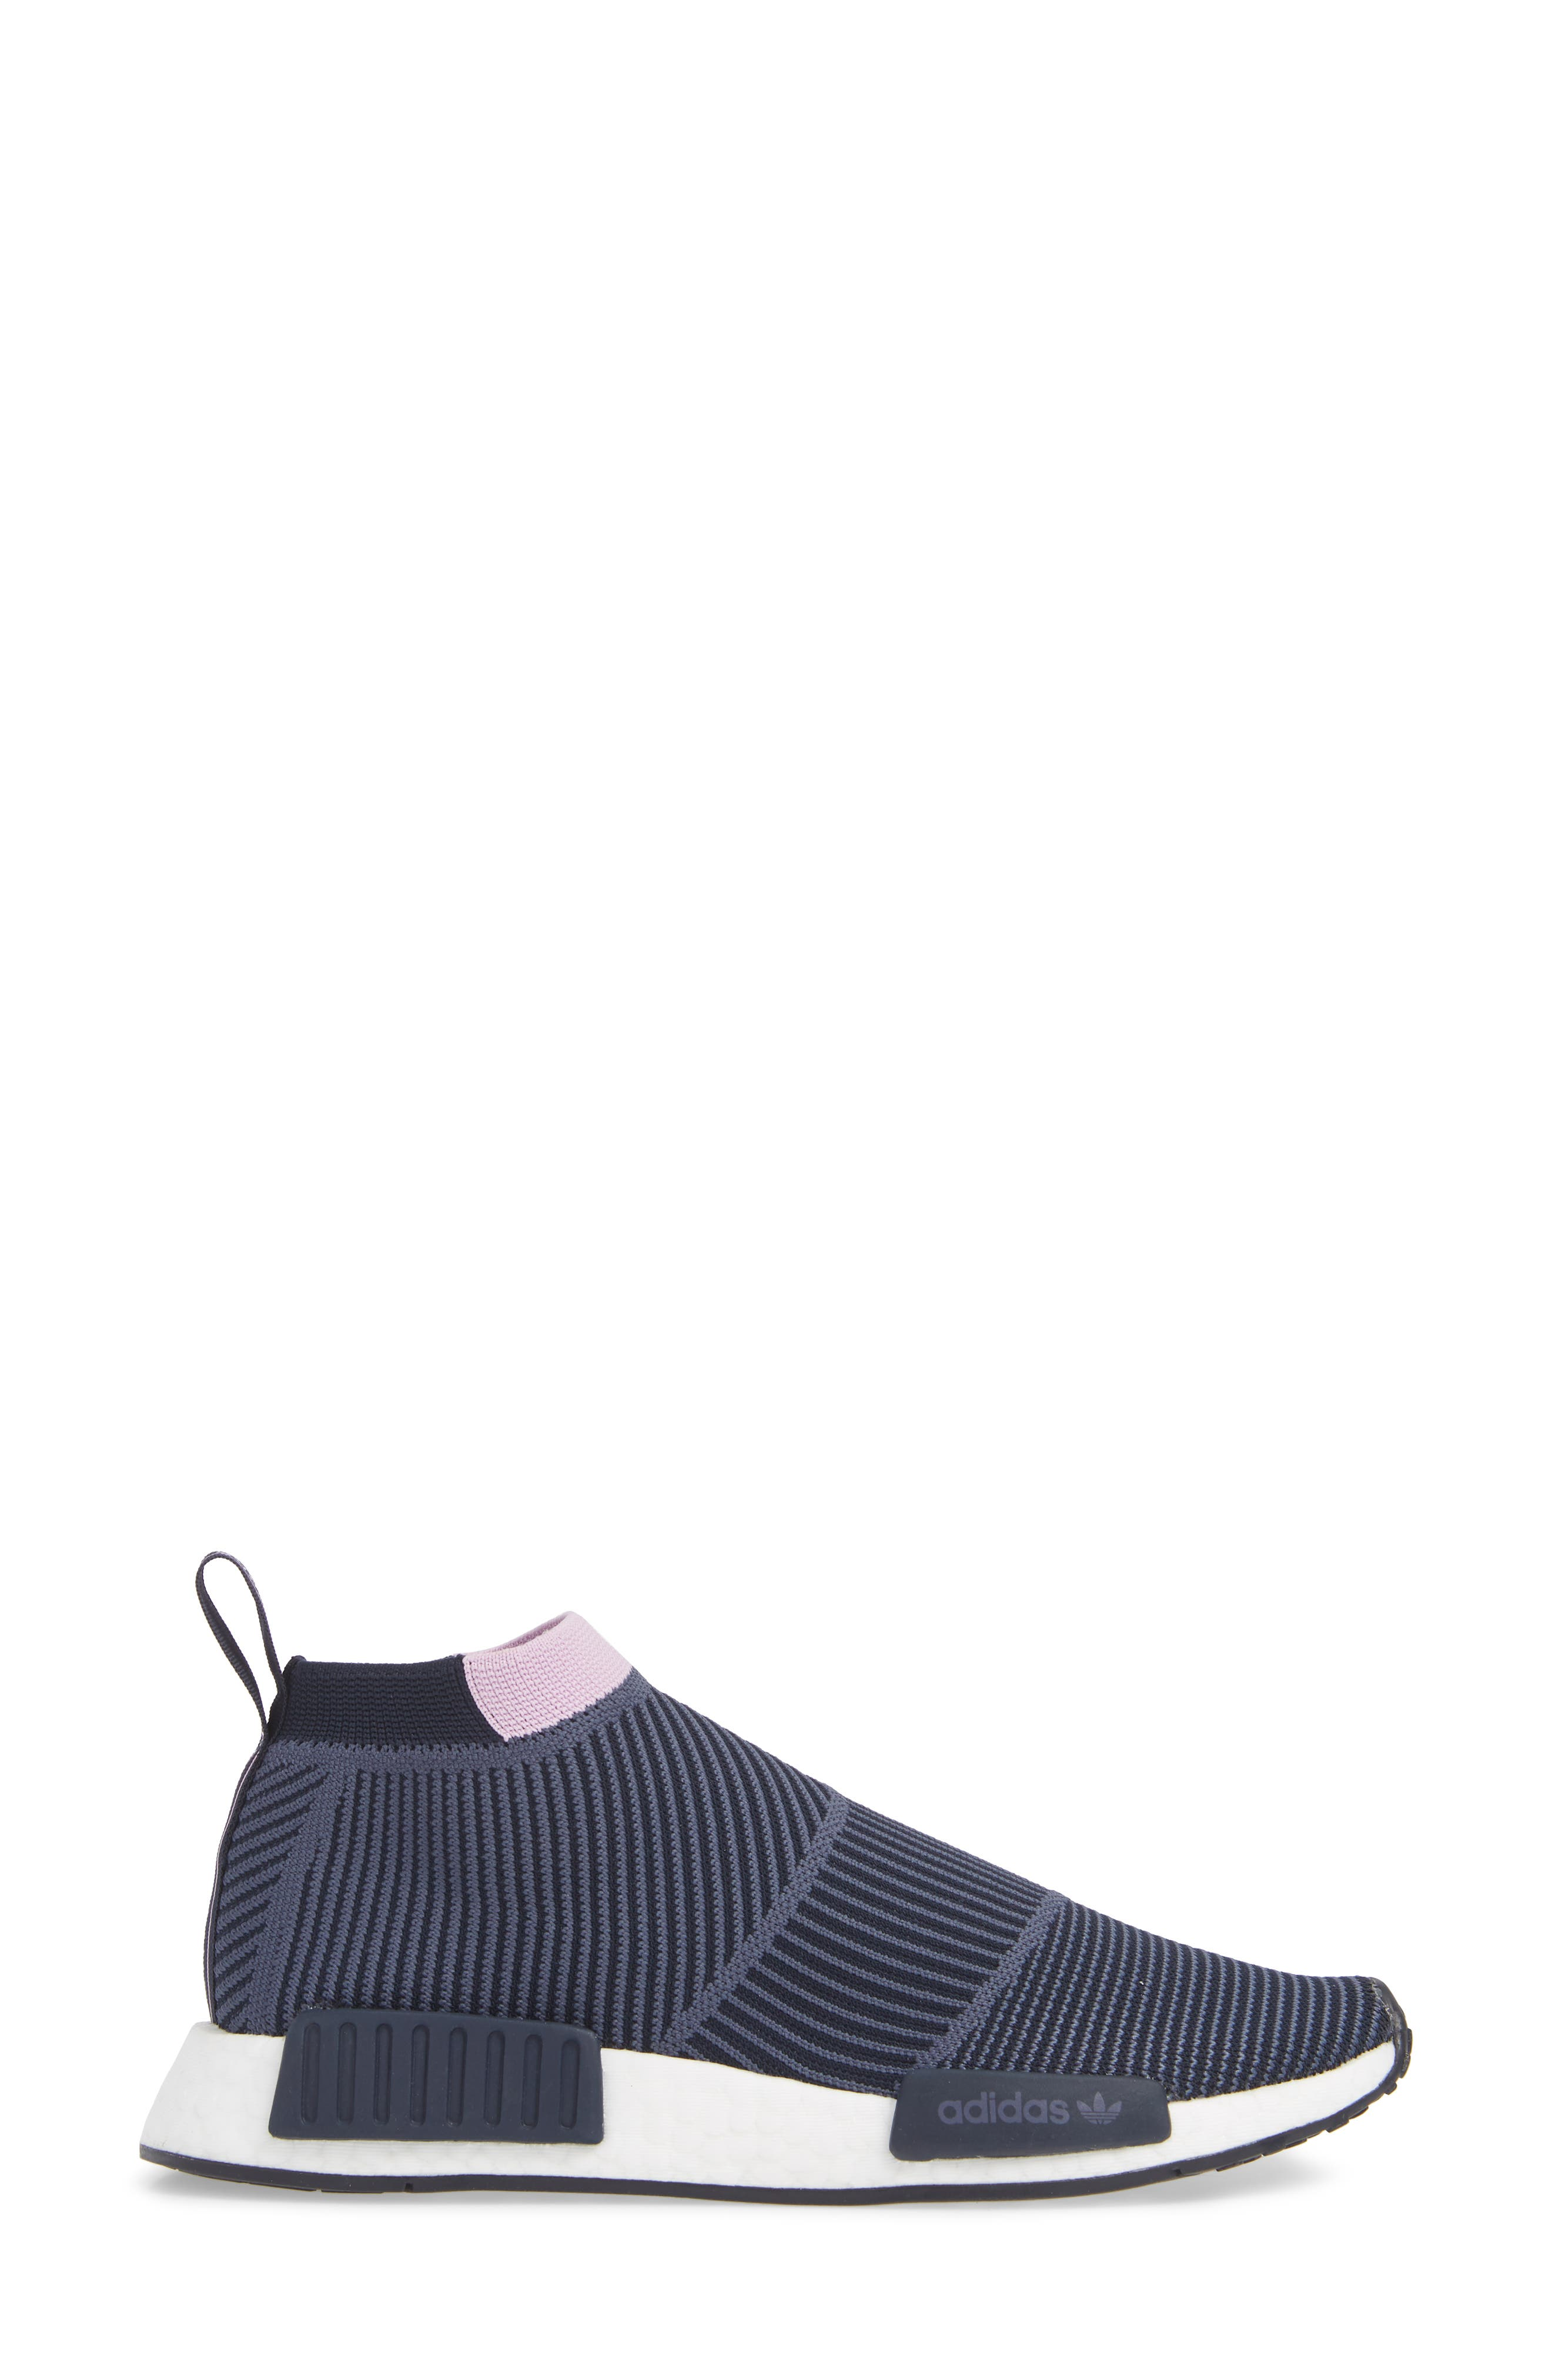 NMD_CS1 Primeknit Sneaker,                             Alternate thumbnail 3, color,                             LEGEND INK/ CLEAR LILAC